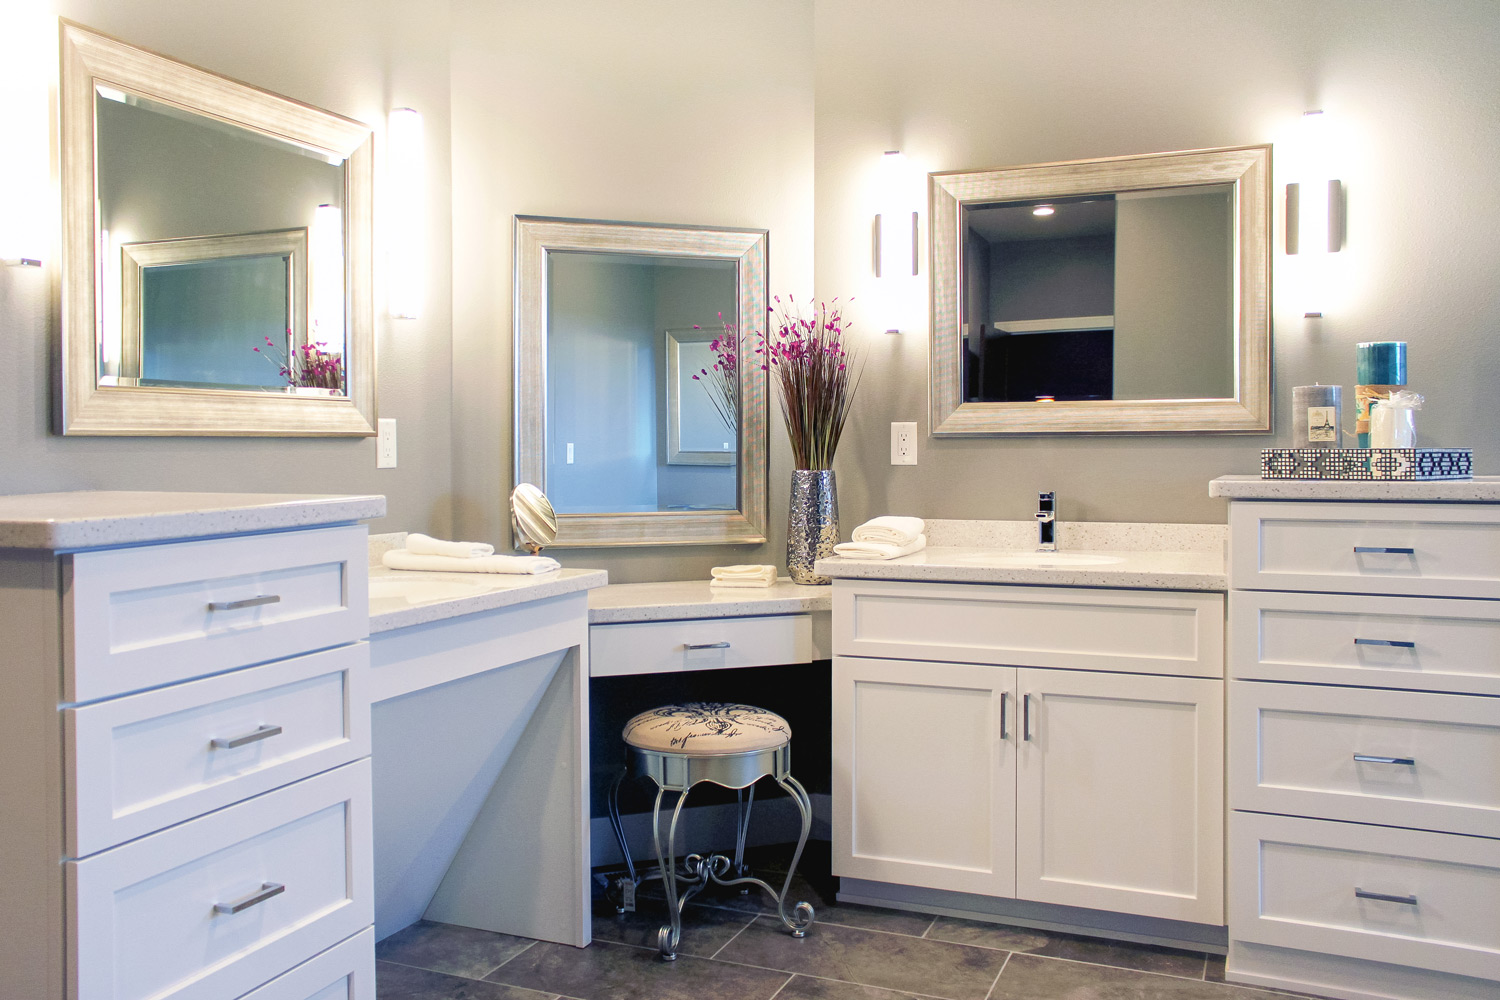 - One vanity is traditional, while the other has an angled base to conceal plumbing pipes while allowing for wheel chair accessibility. It is also important to consider the elevation of mirrors for each user of the bathroom.